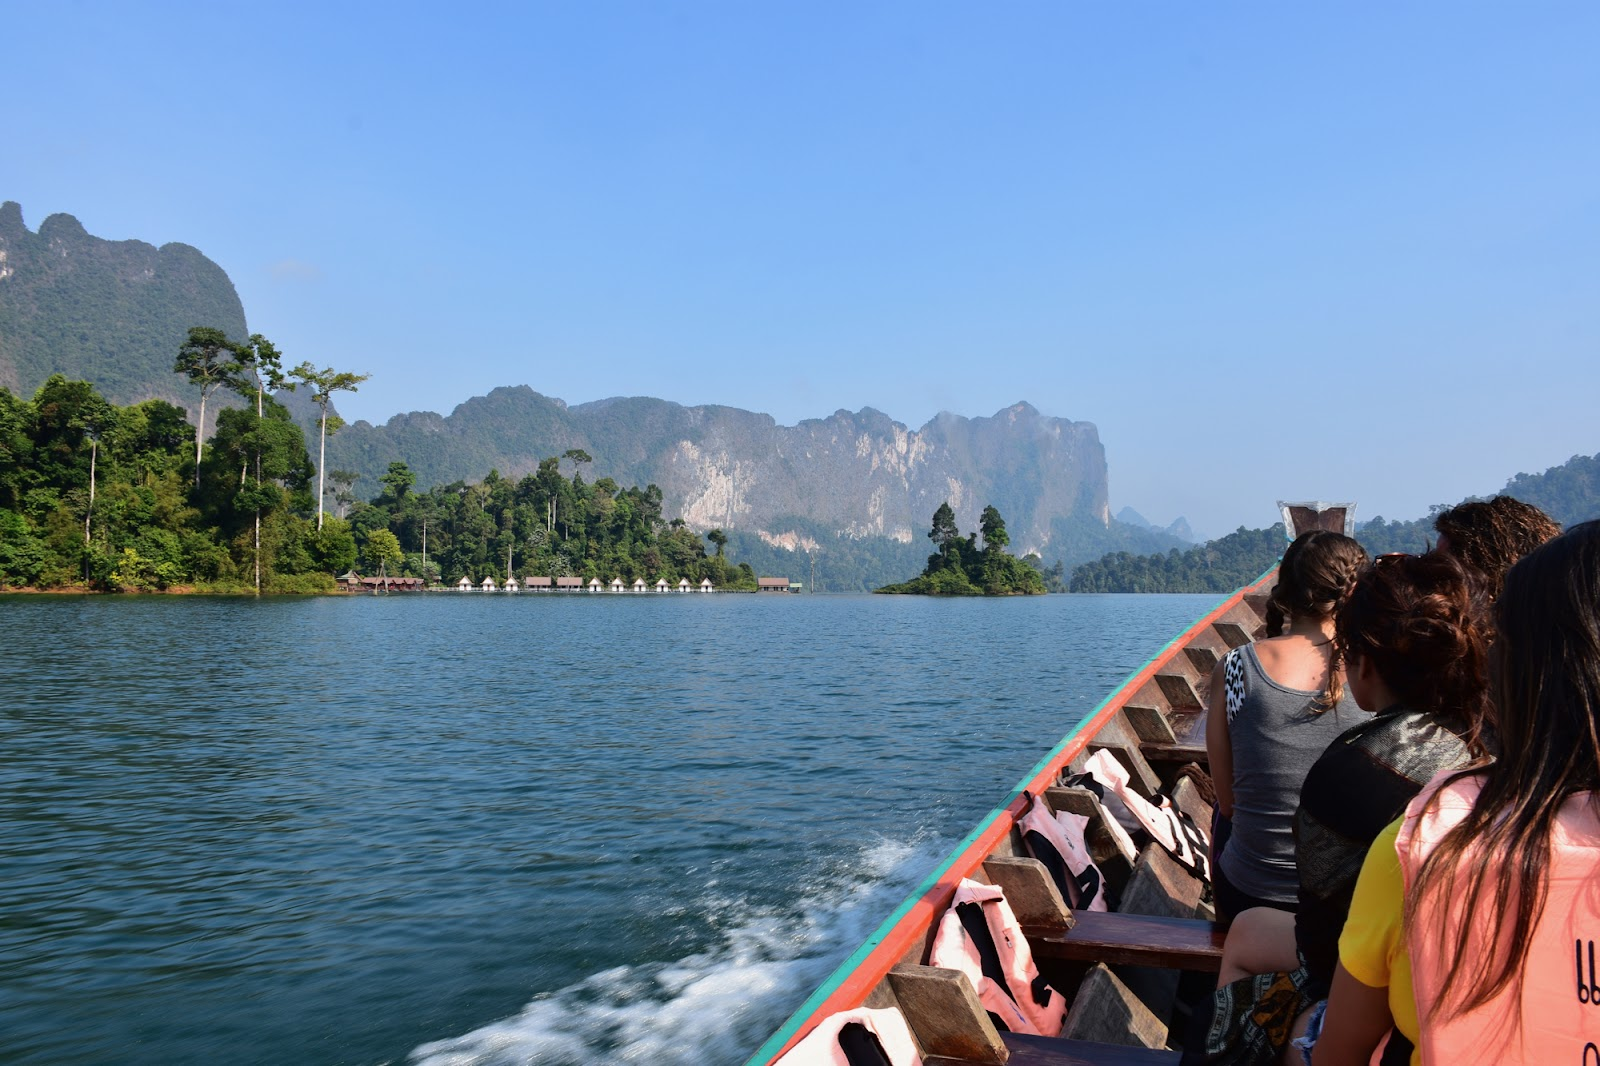 One Day Tour by Longtail Boat on Cheow Lan Lake in Khao Sok National Park from Krabi